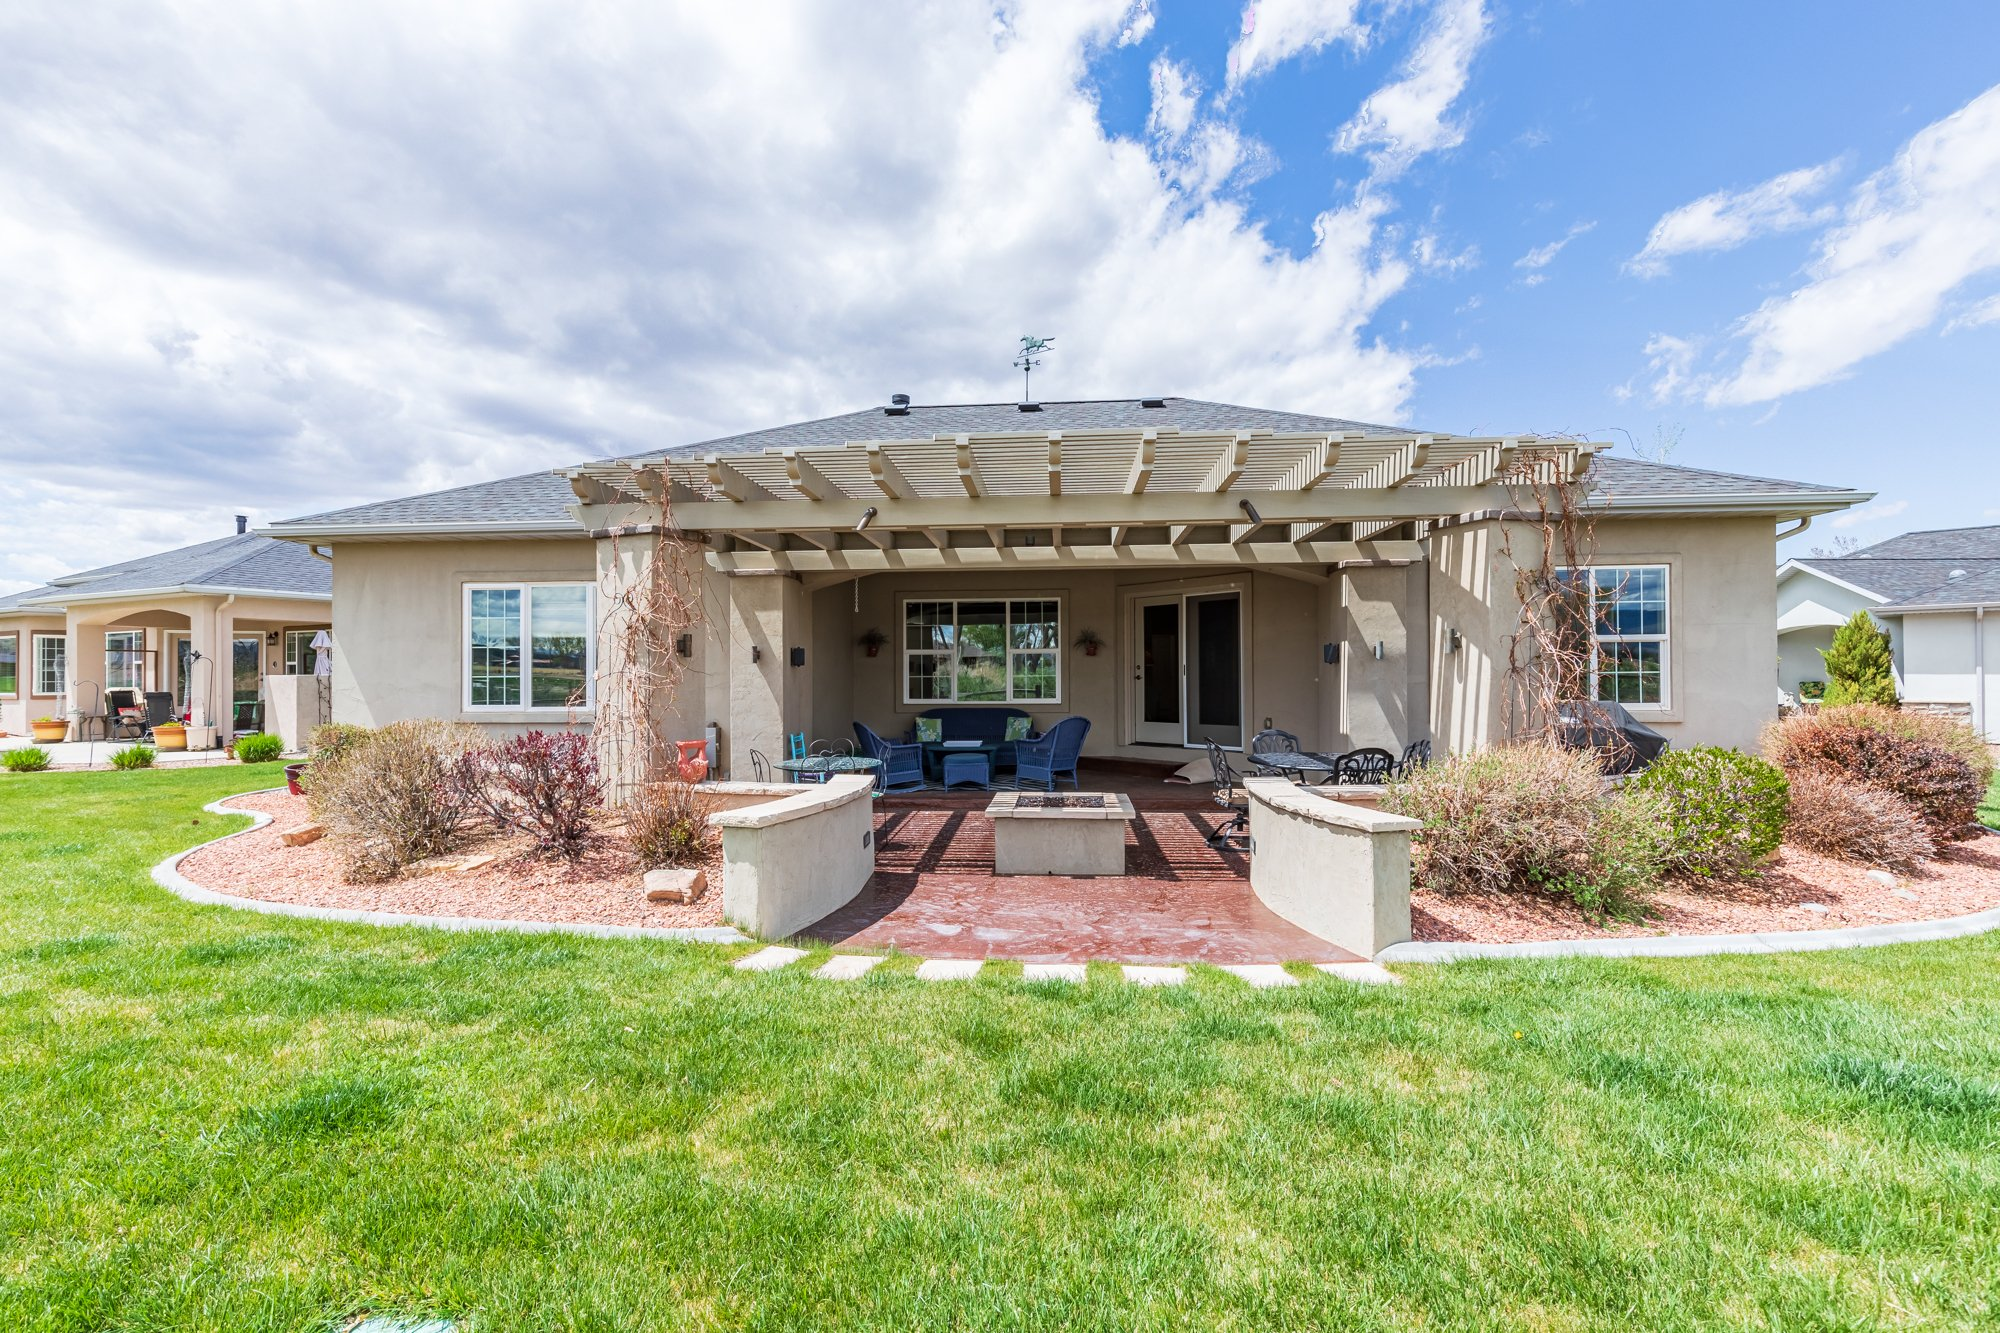 Covered Back Patio - 640 Badger Court Montrose, CO 81403 - Atha Team Real Estate Agents